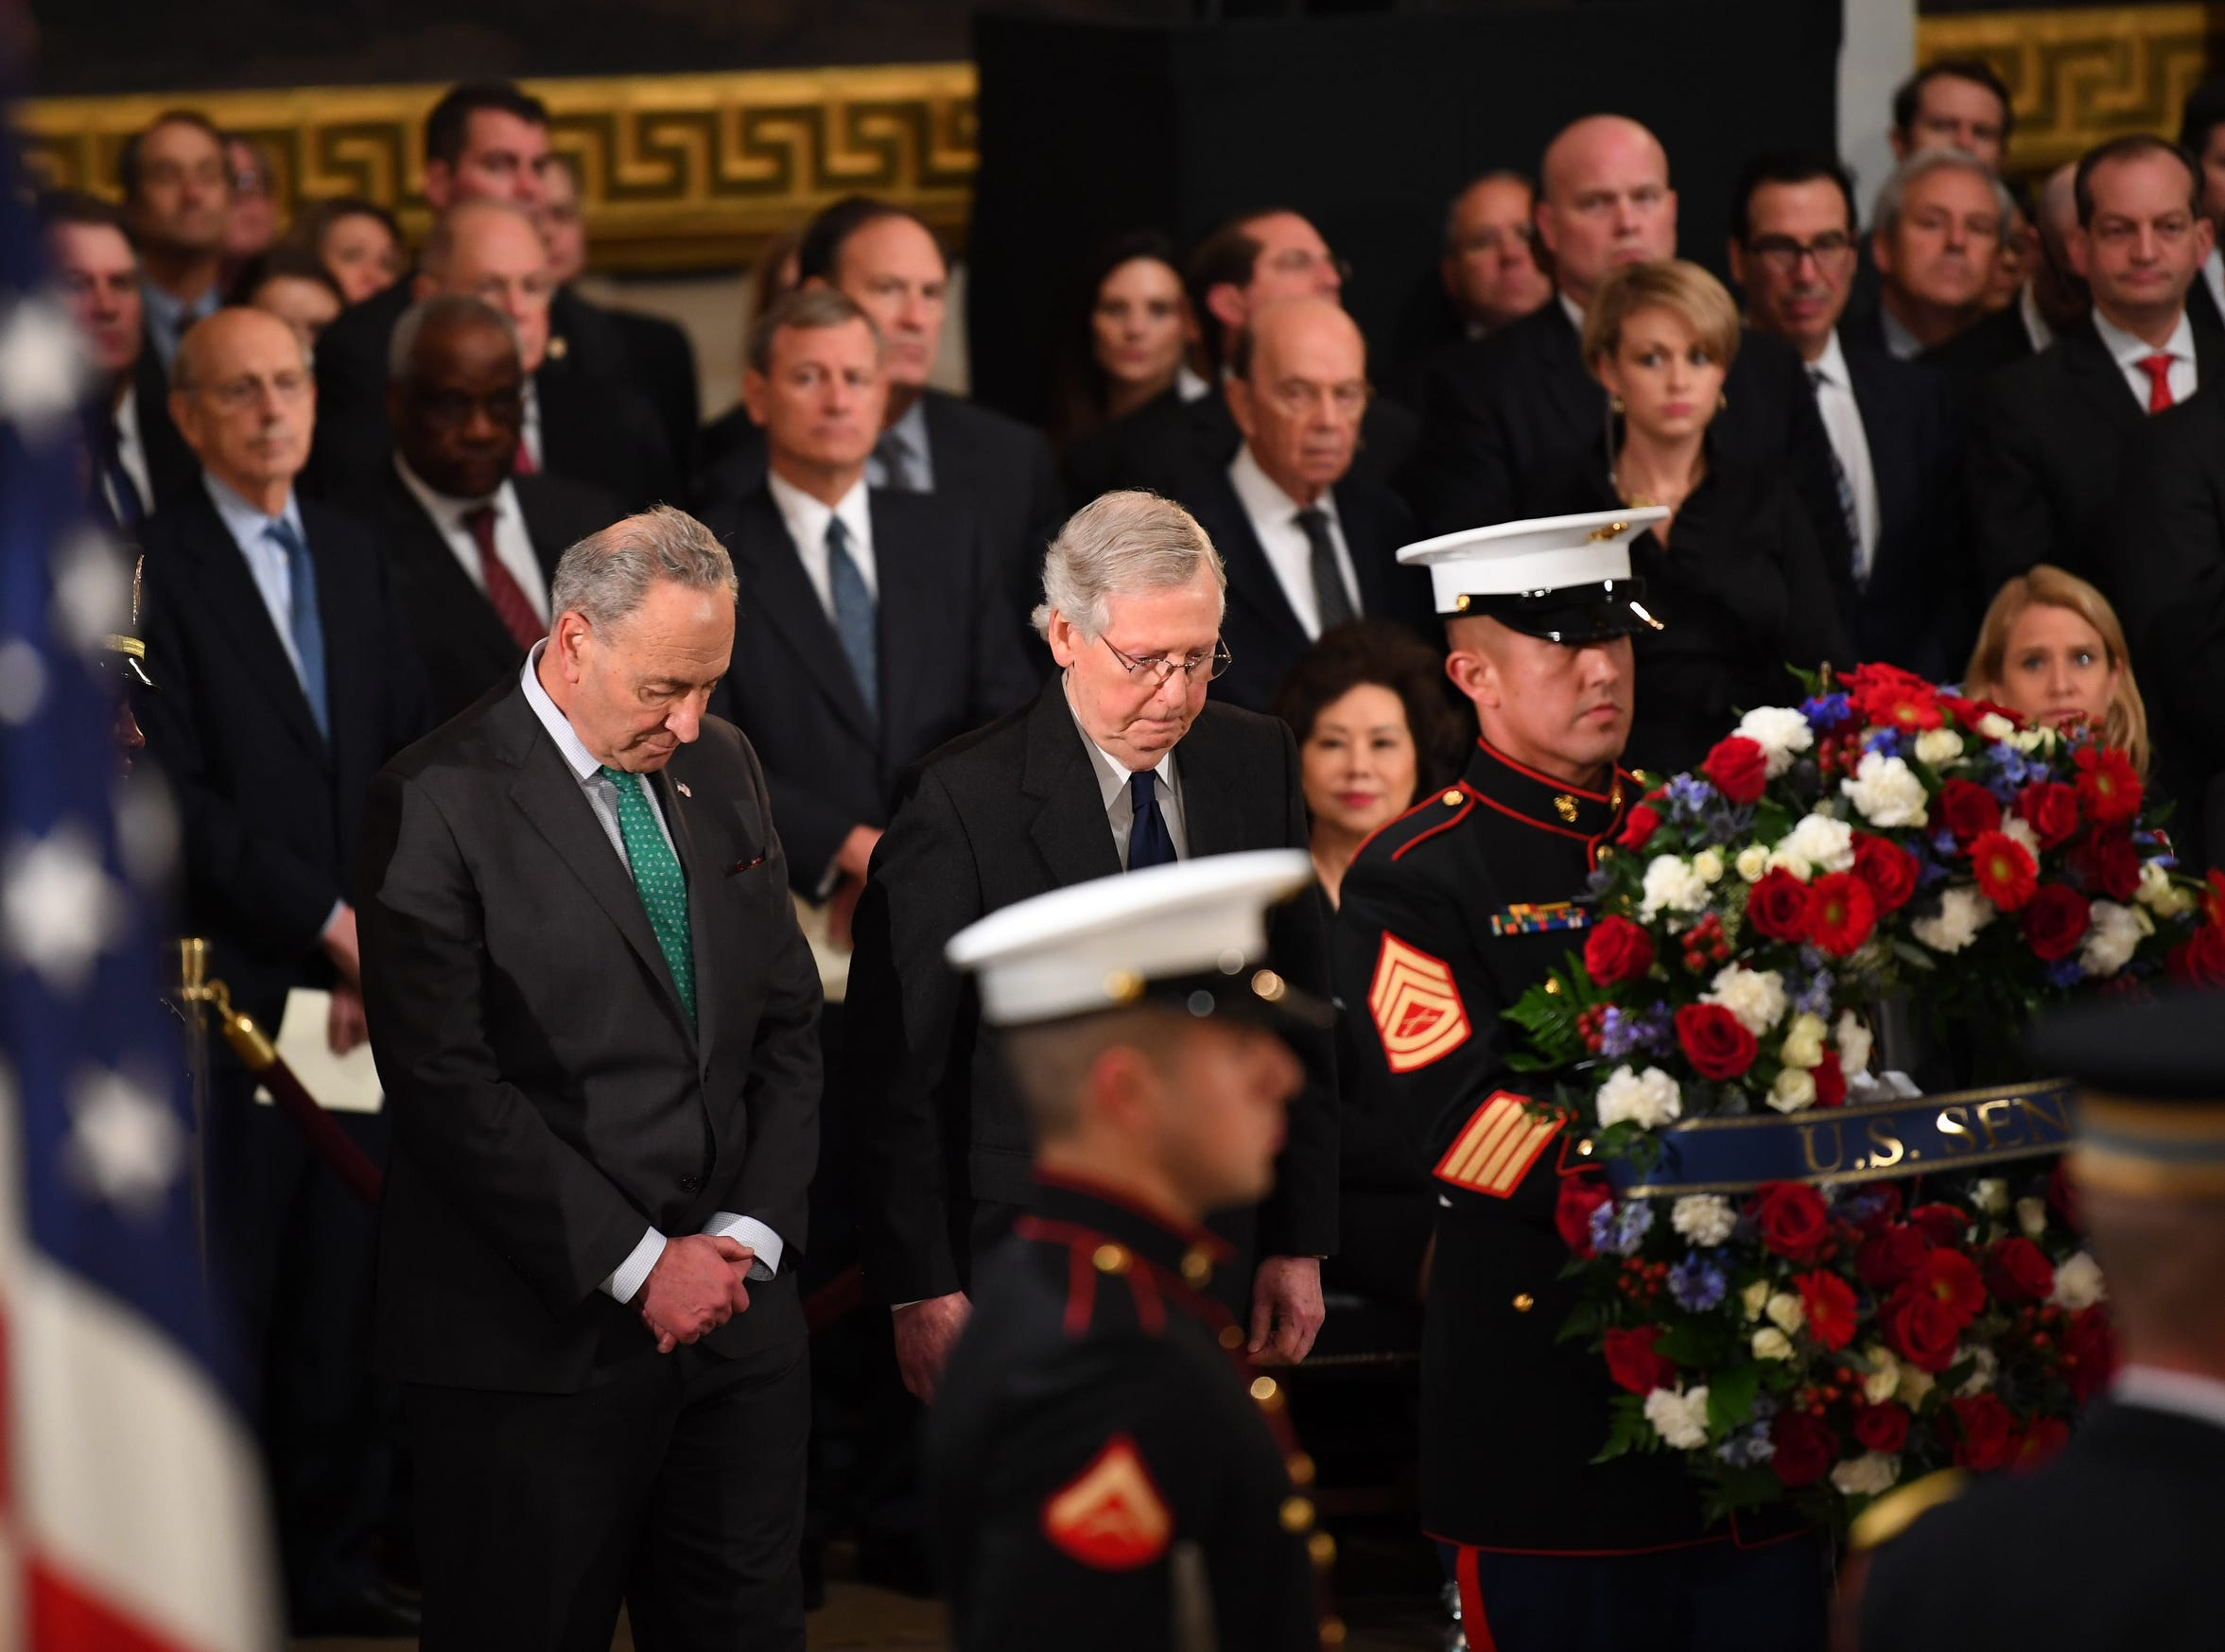 Senate Minority Leader Chuck Schumer, left, and Senate Majority Leader  Mitch McConnel bow their heads as the Senate wreath is presented in the U.S. Capitol Rotunda.